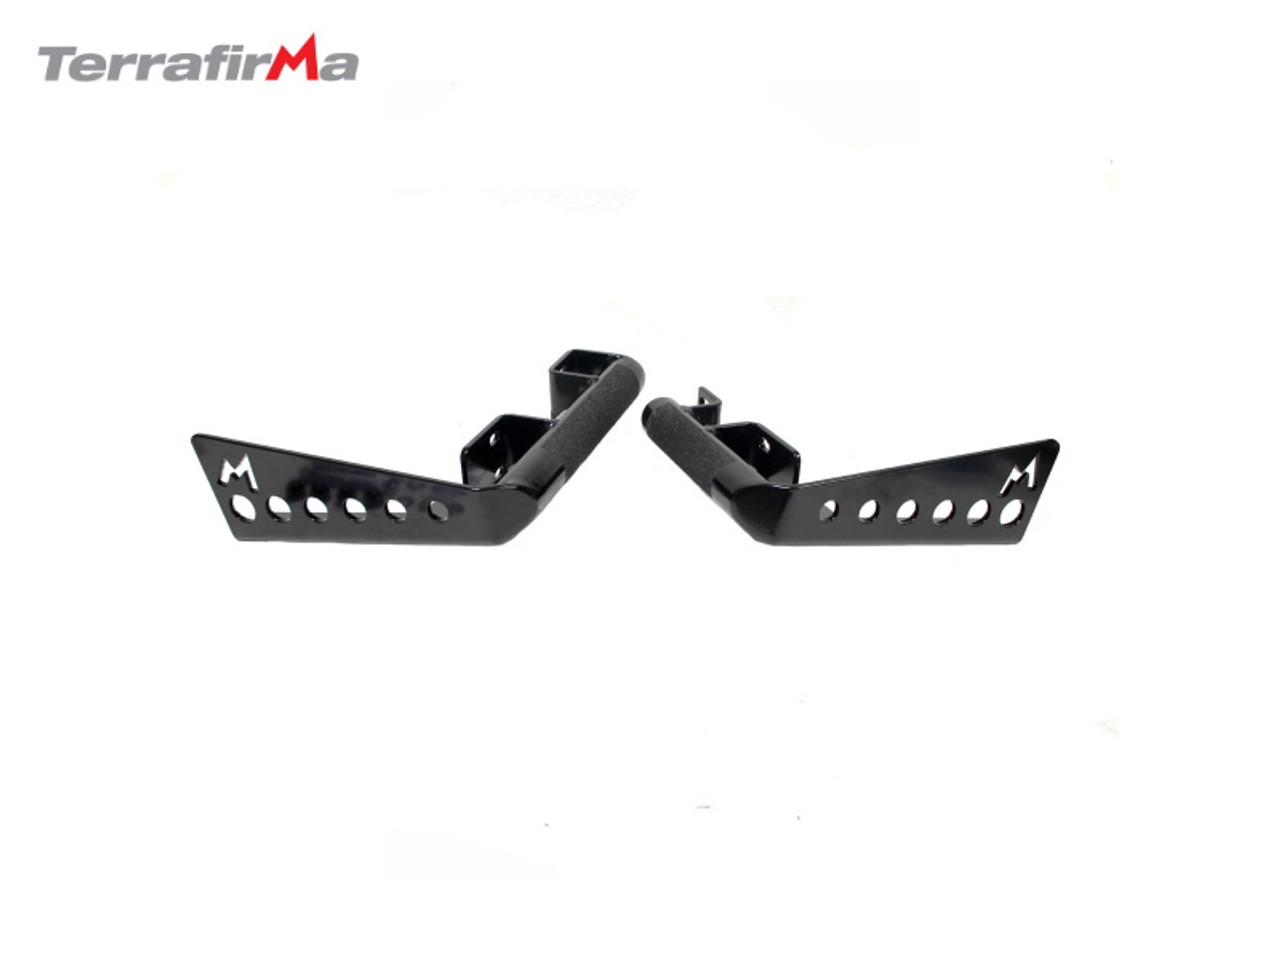 Terrafirma Heavy Duty Rear Bumper Corners For Defender 90 With Spare Wheel Carrier